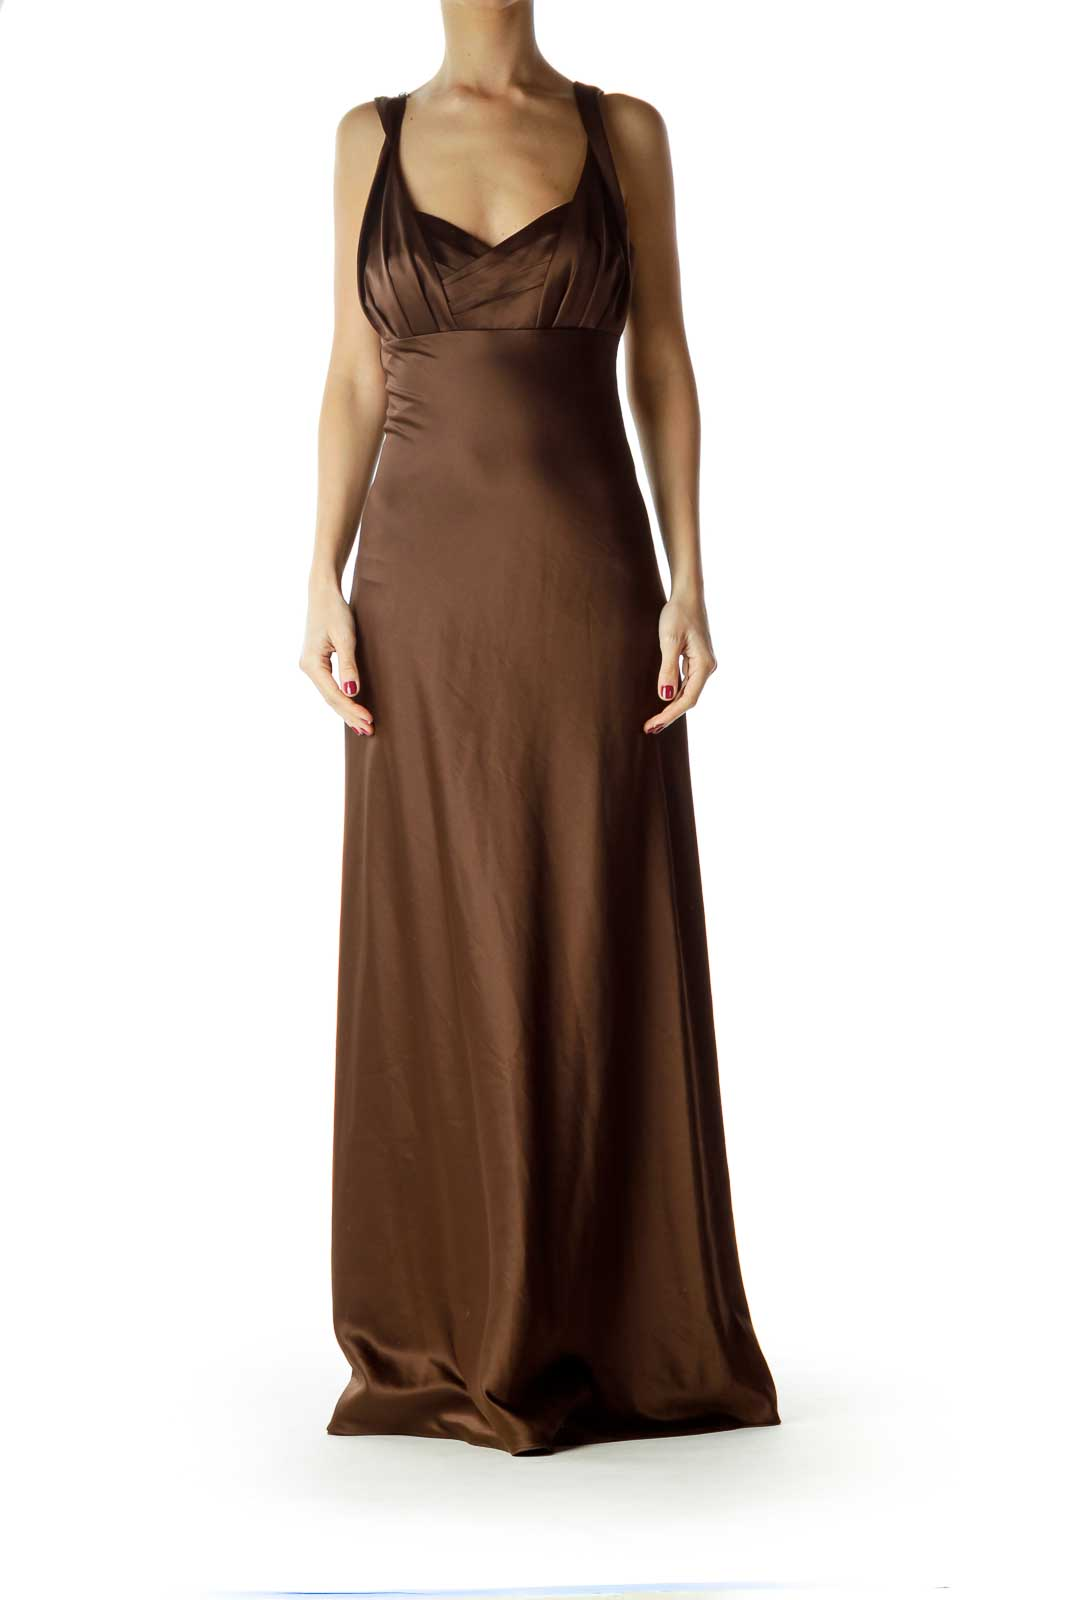 Brown Empire Waist Evening Dress